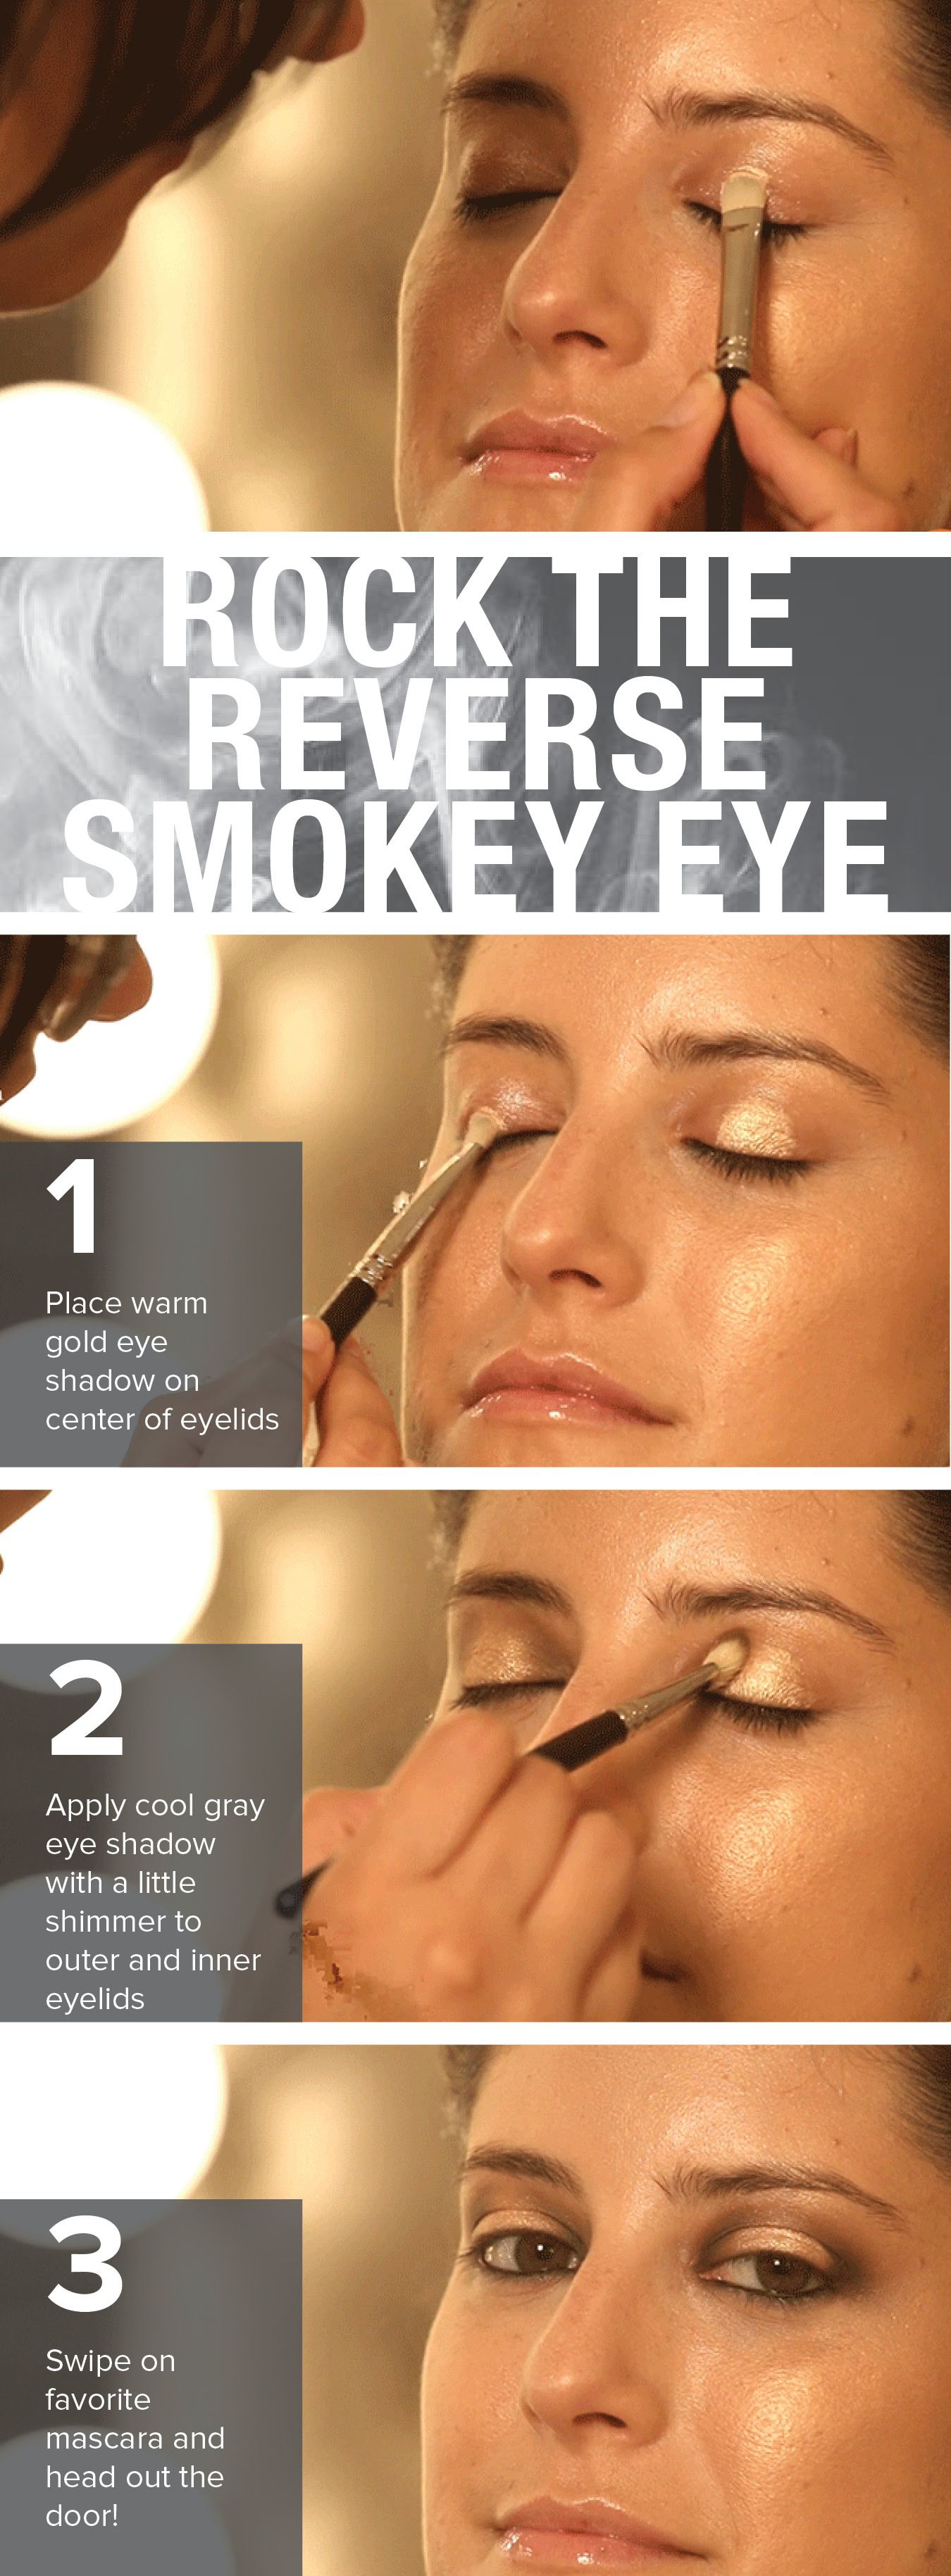 Sick of the smokey eye? This fierce look is bound to replace it